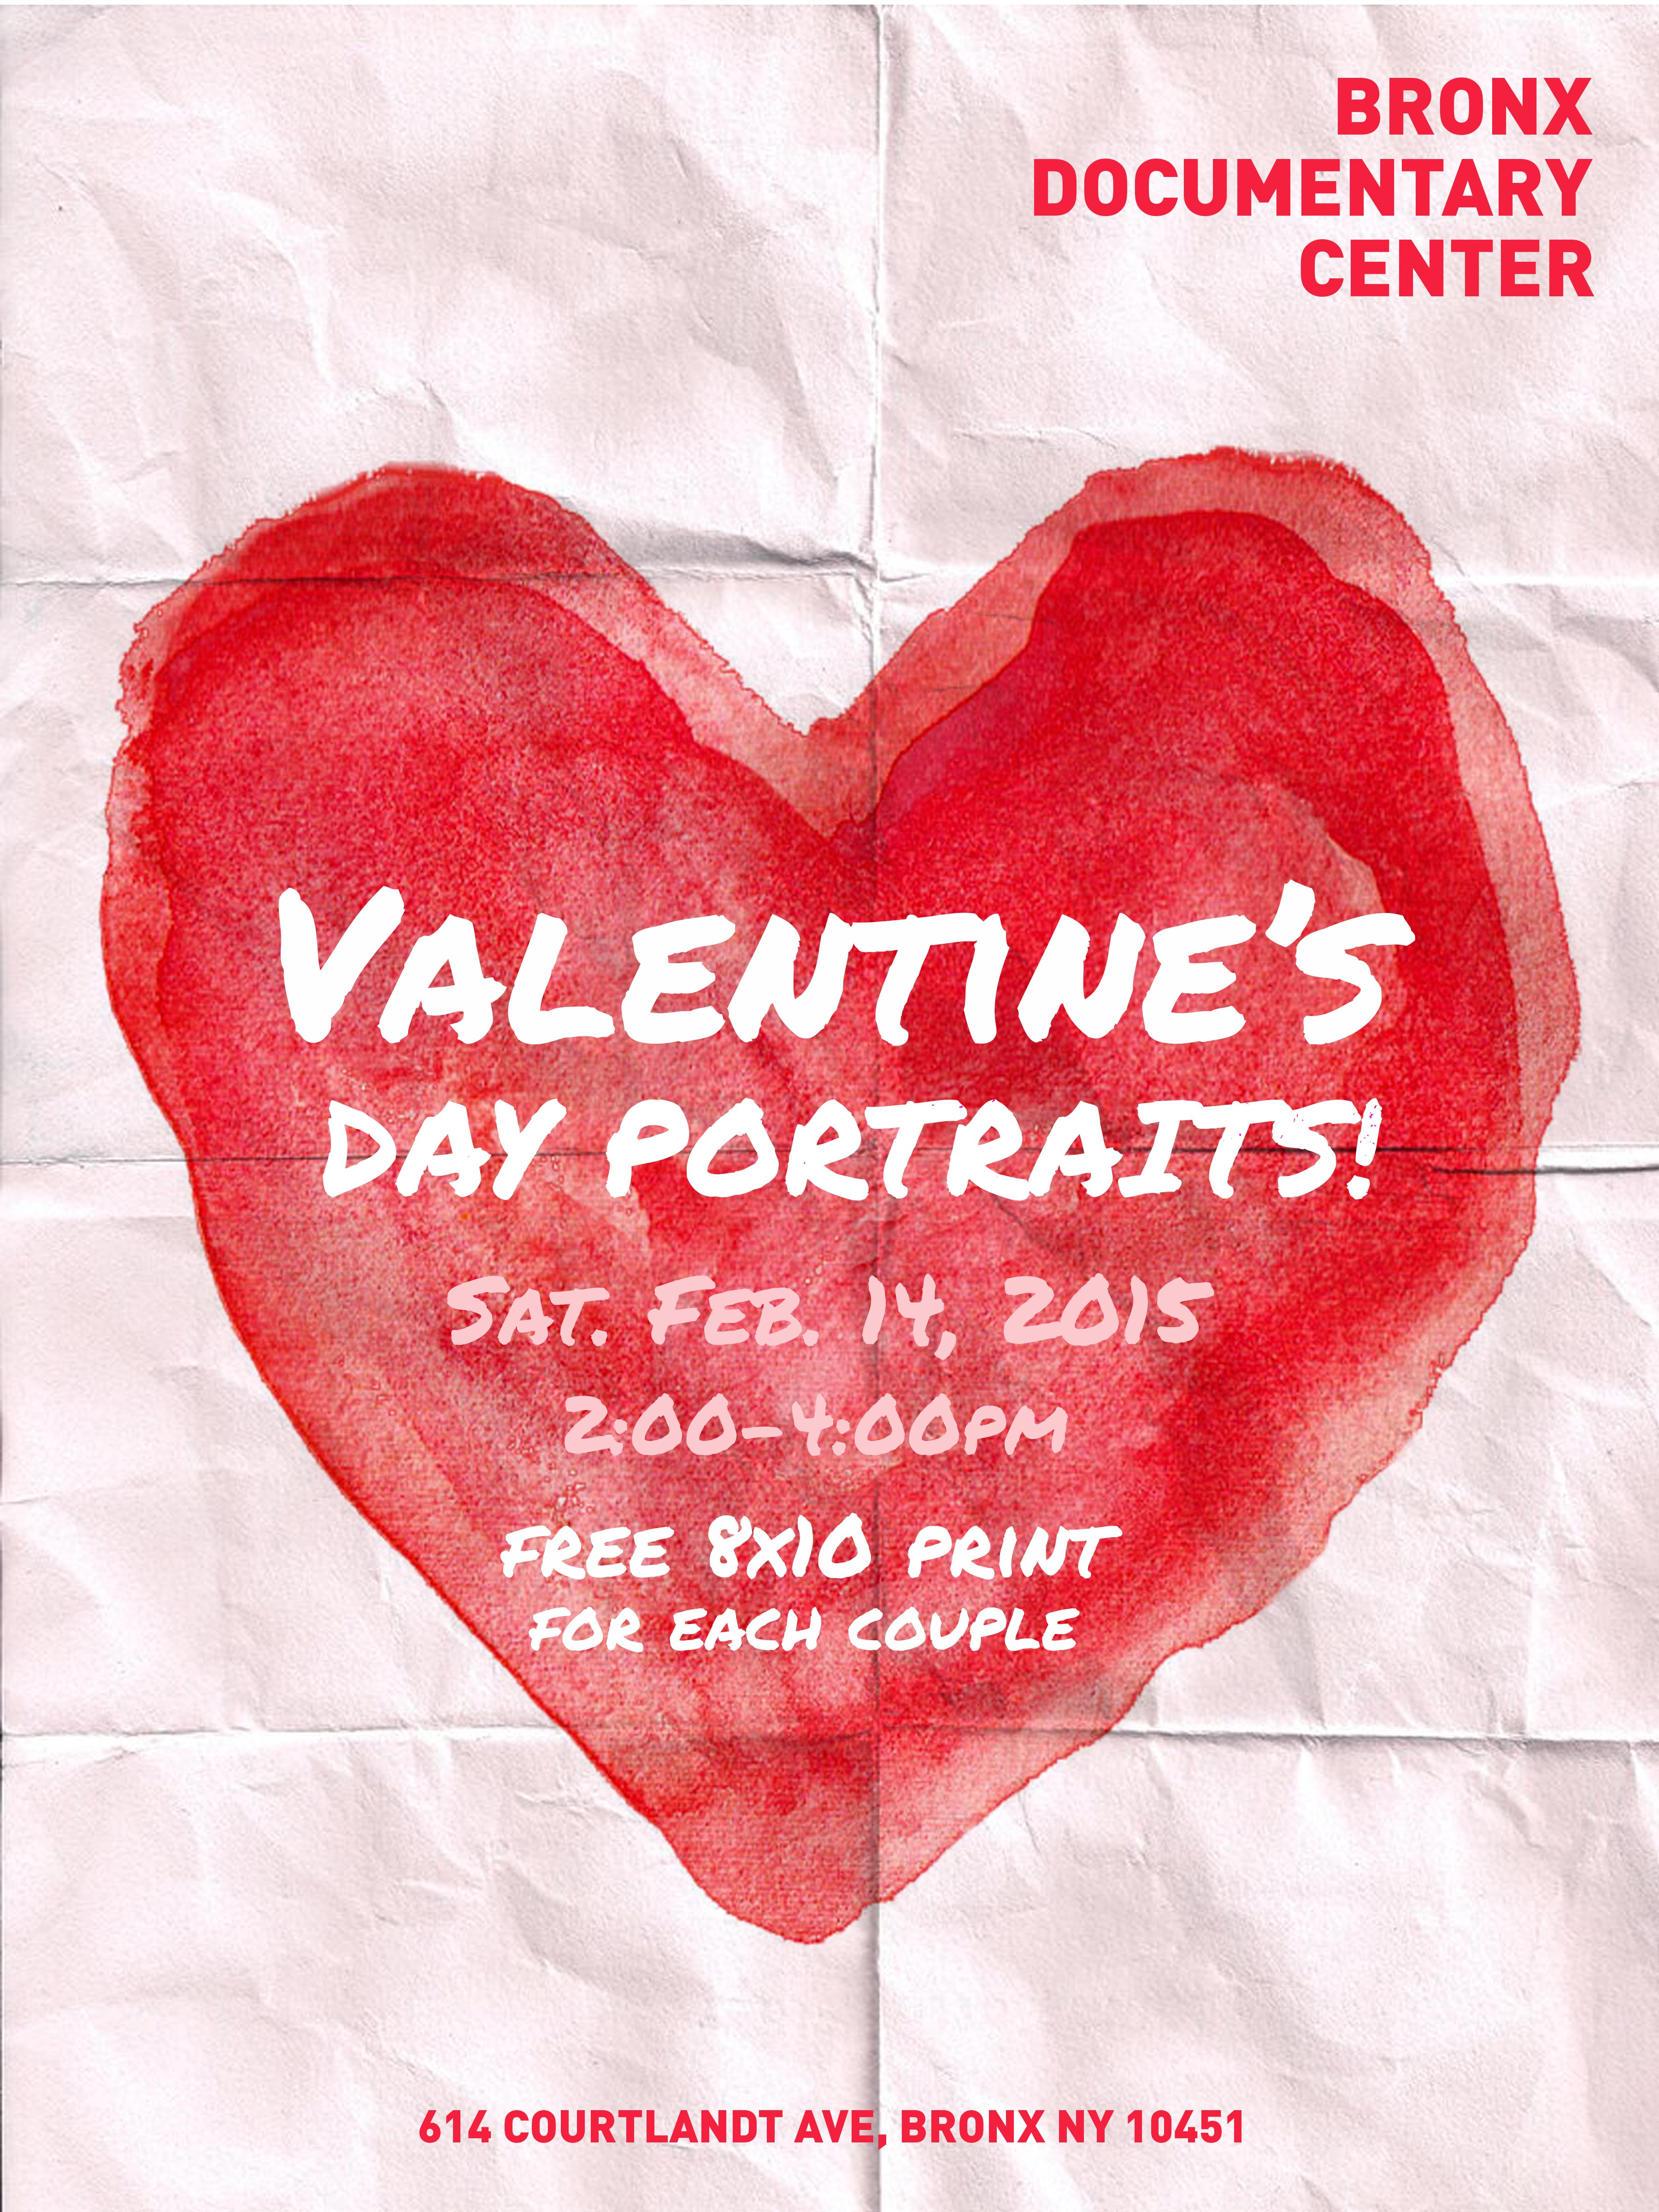 Free Valentine's Day Portraits for Bronx Residents